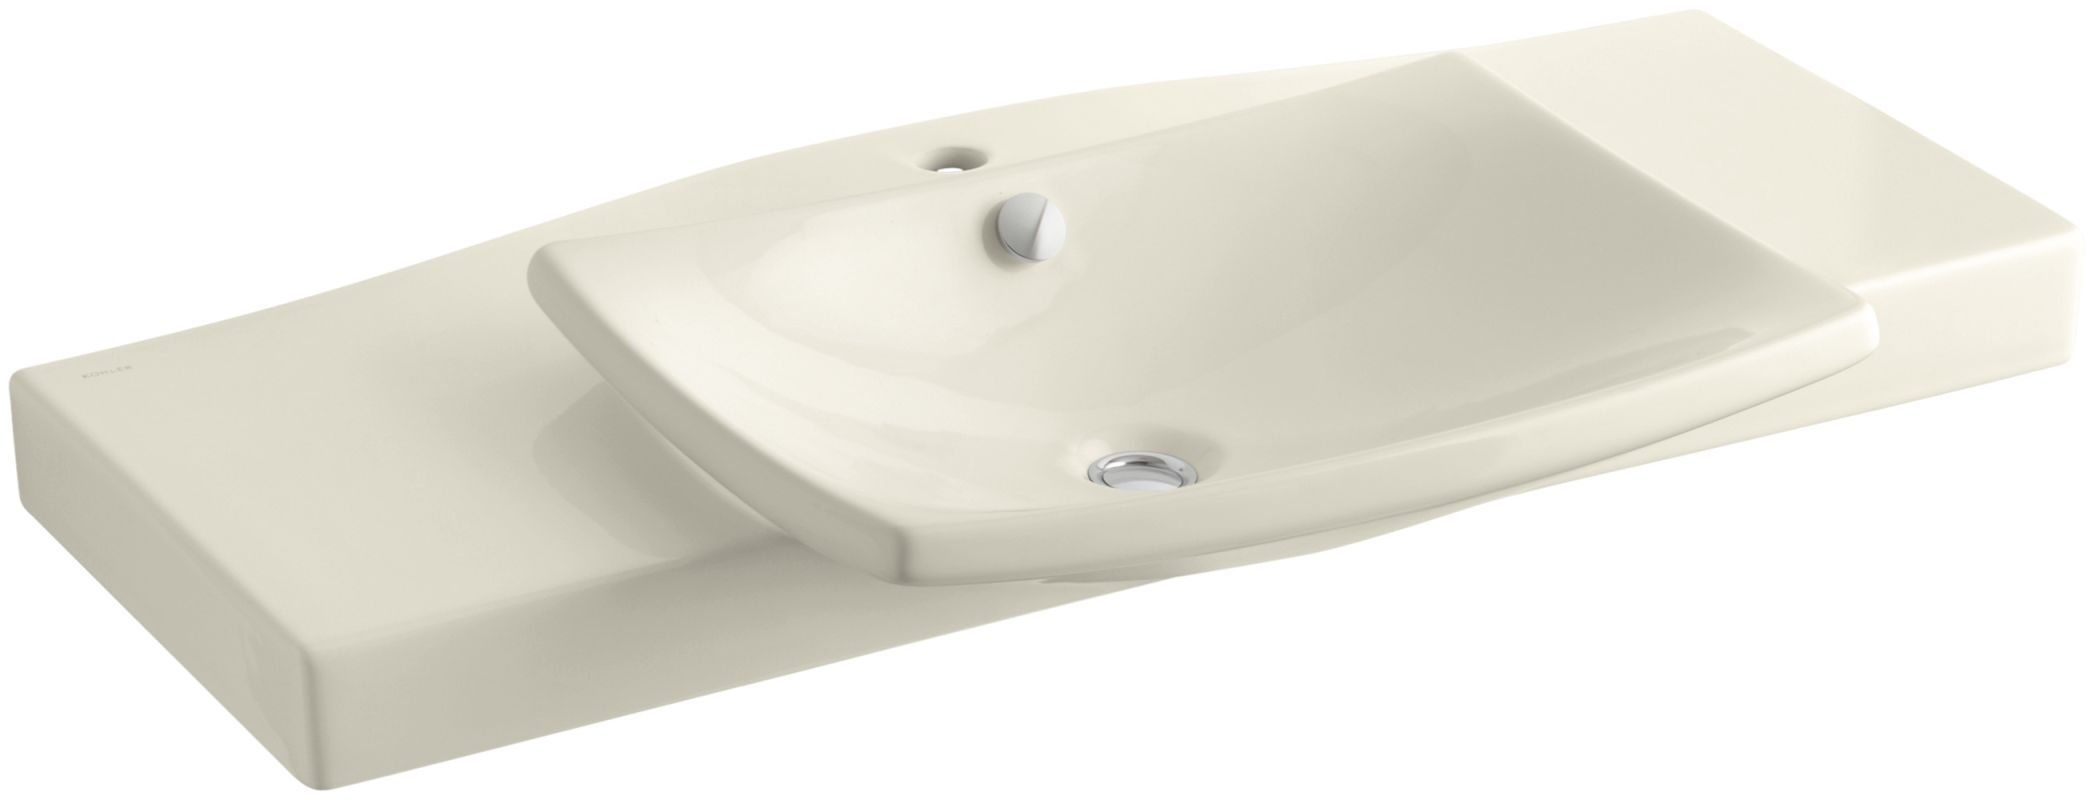 Kohler K 19034 1 47 Almond Escale 39 3 4 Fireclay Pedestal Bathroom Sin